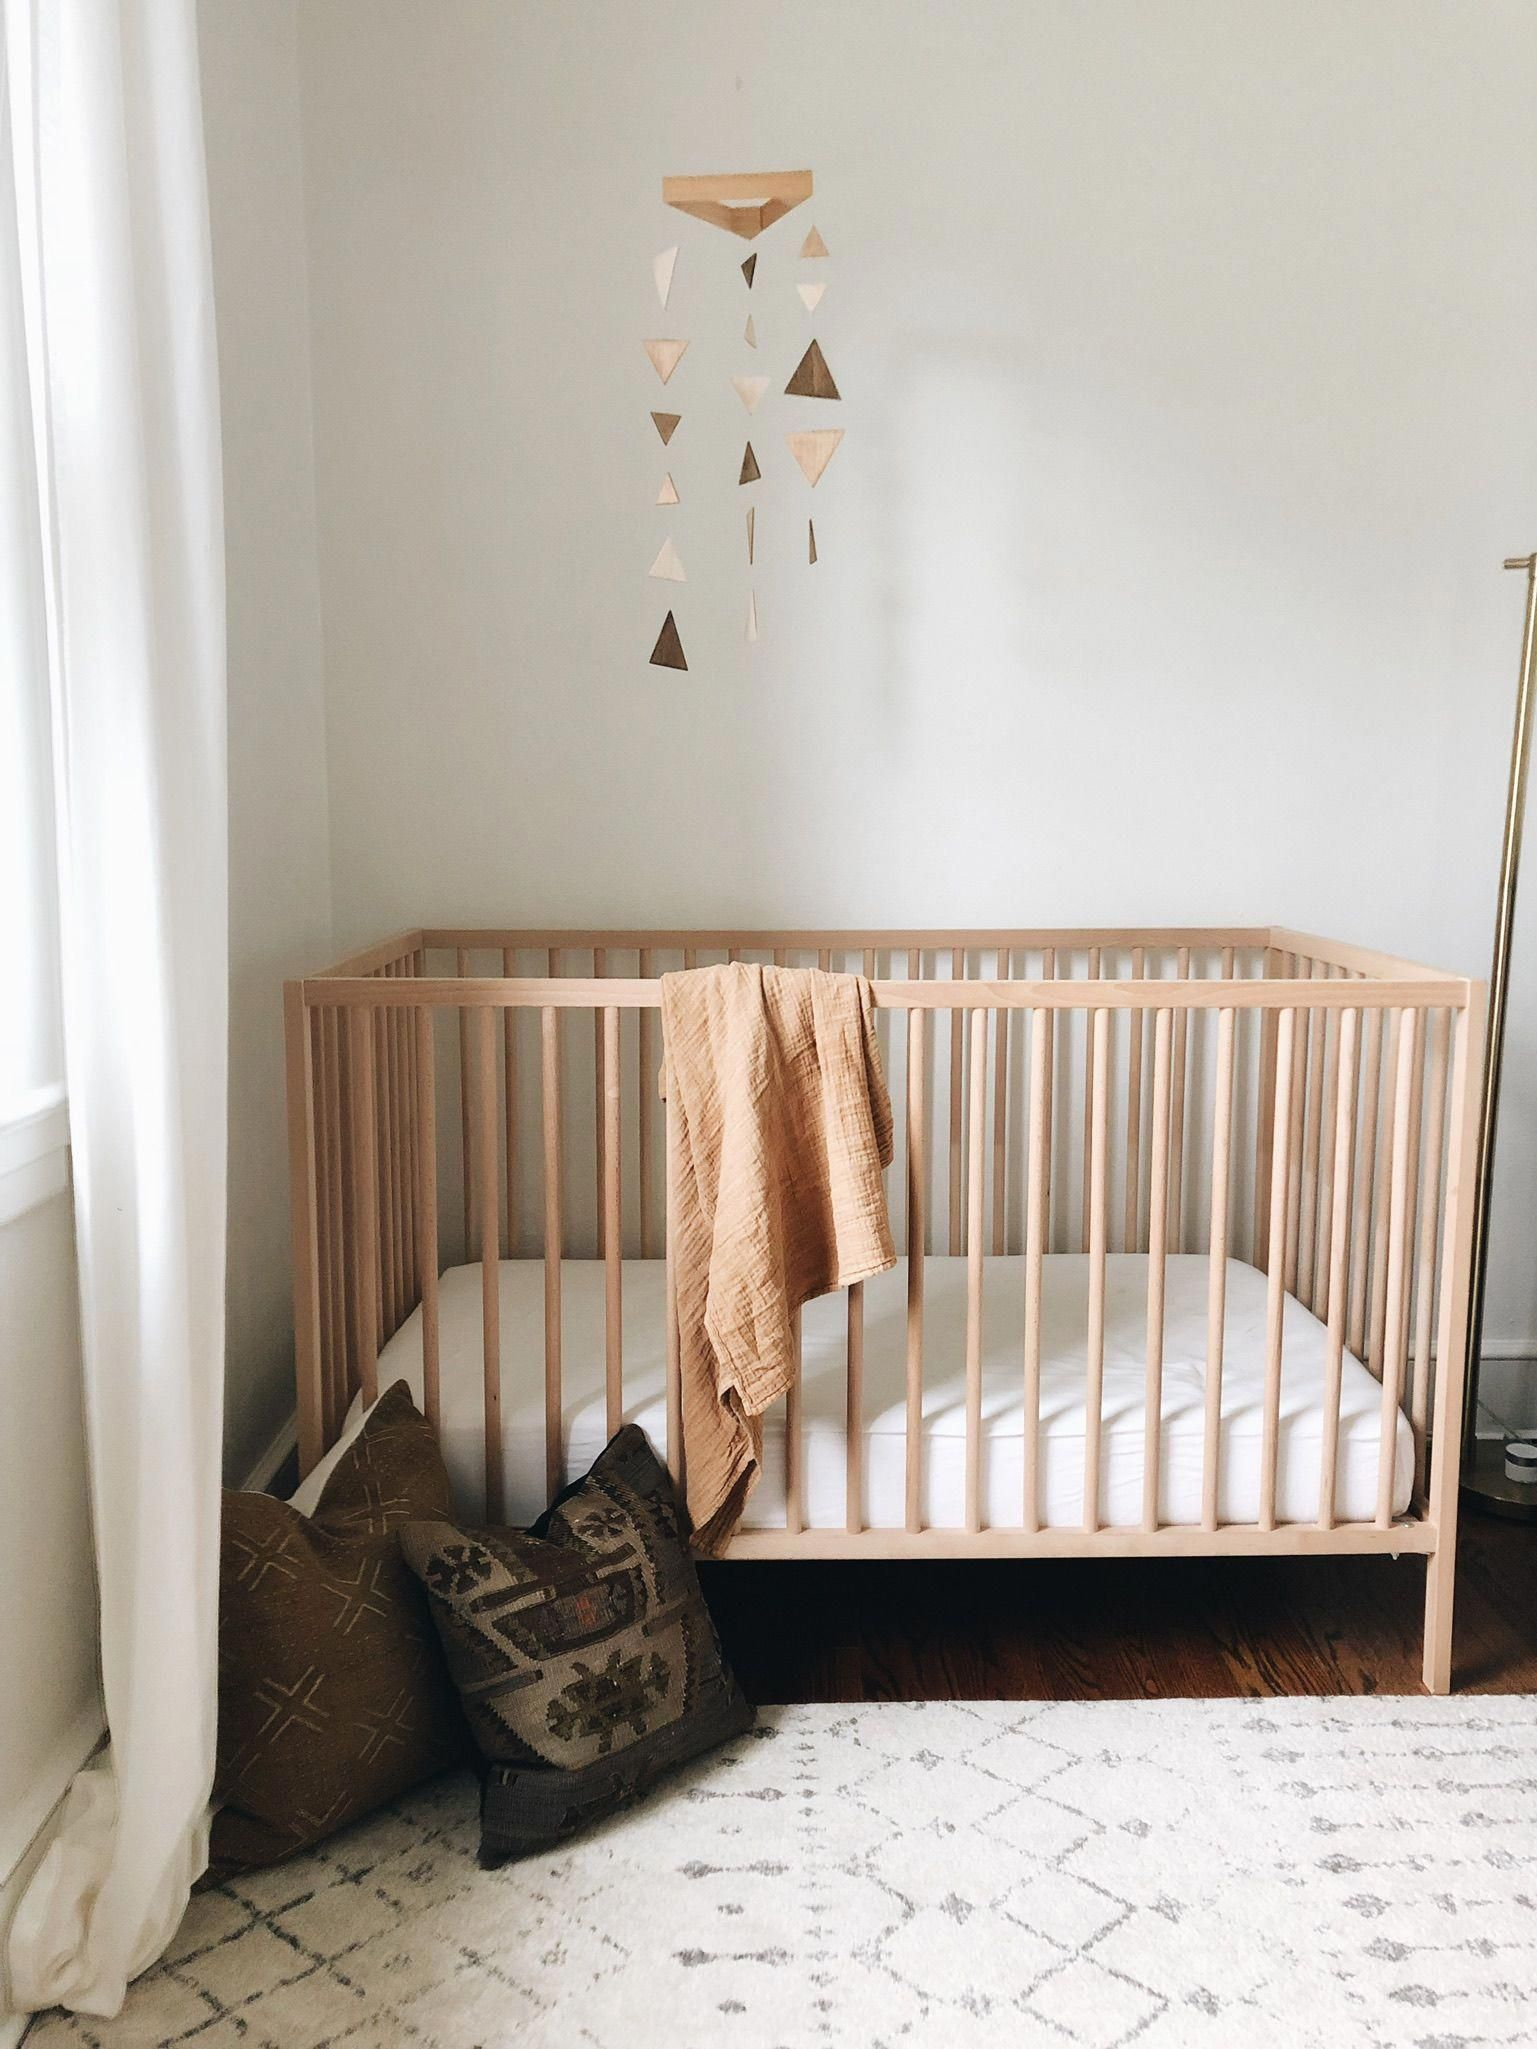 Midcentury Modern Natural Boho Nursery With Texture Darling Cashmere Blog Bohonursery Vintage Baby Rooms Baby Room Inspiration Baby Room Decor